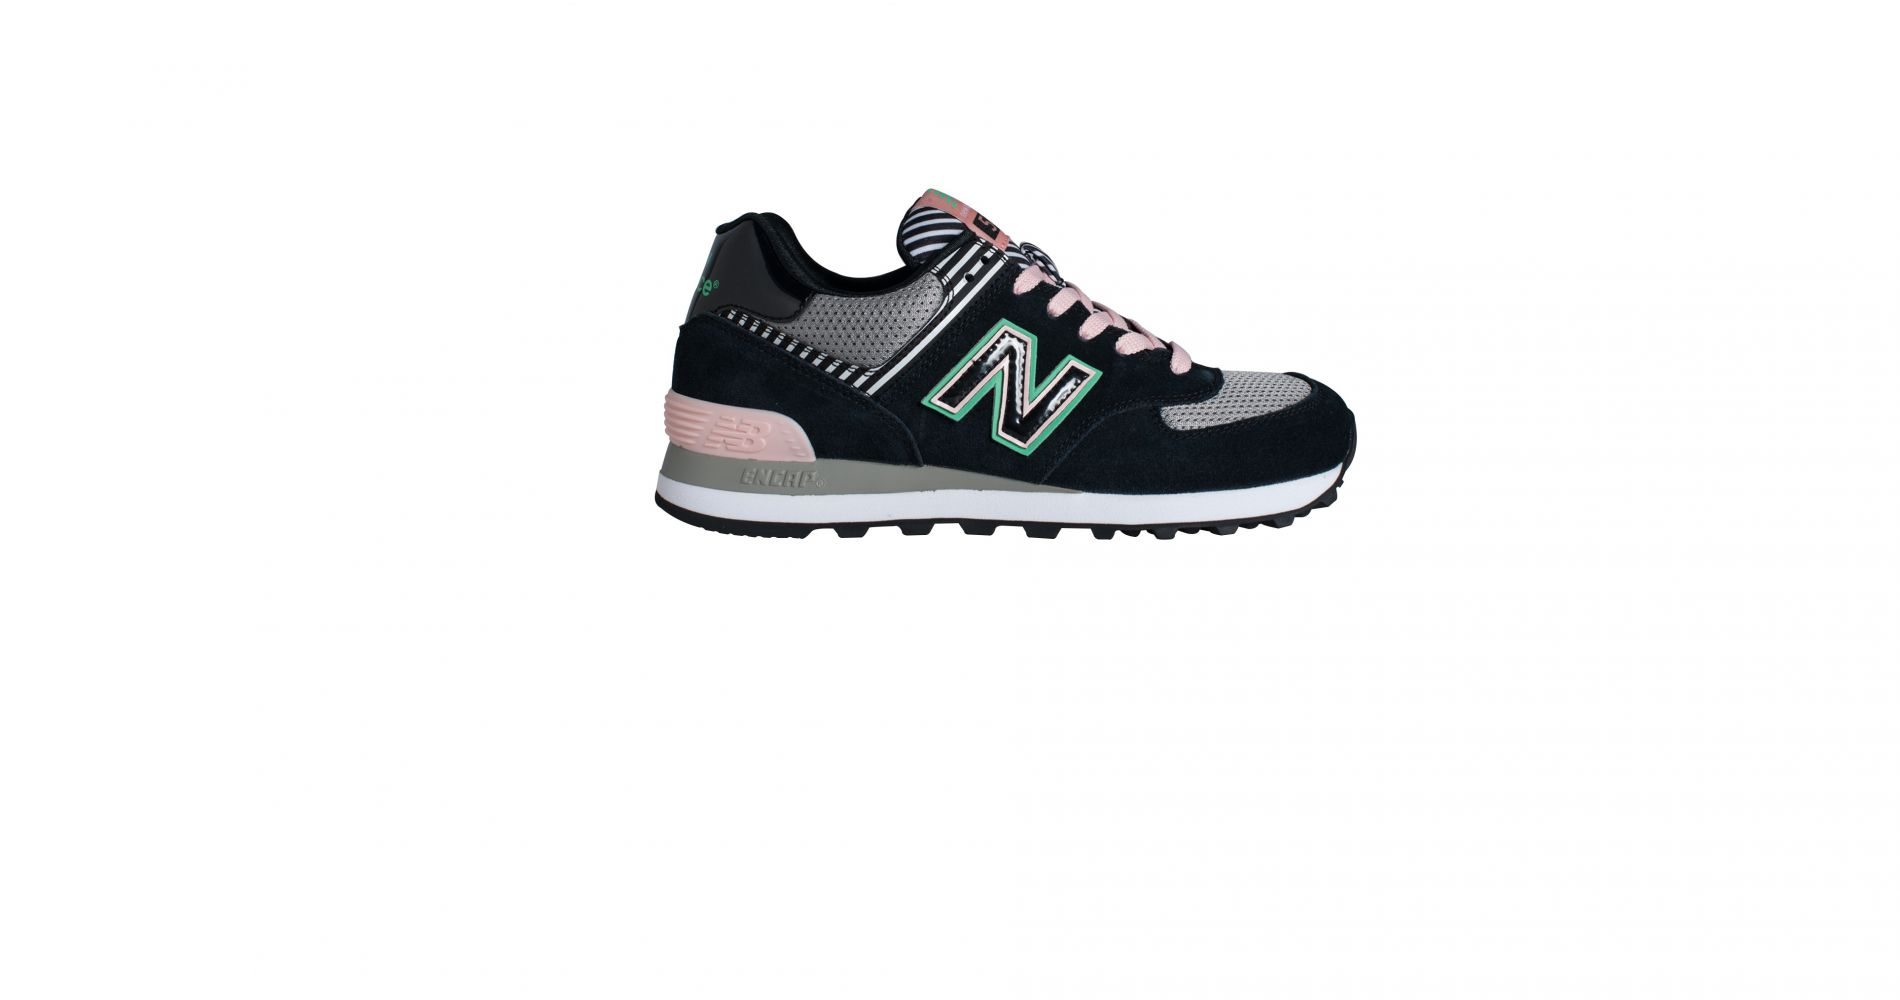 New Balance 574 Palm Springs, le modèle culte aux couleurs du printemps